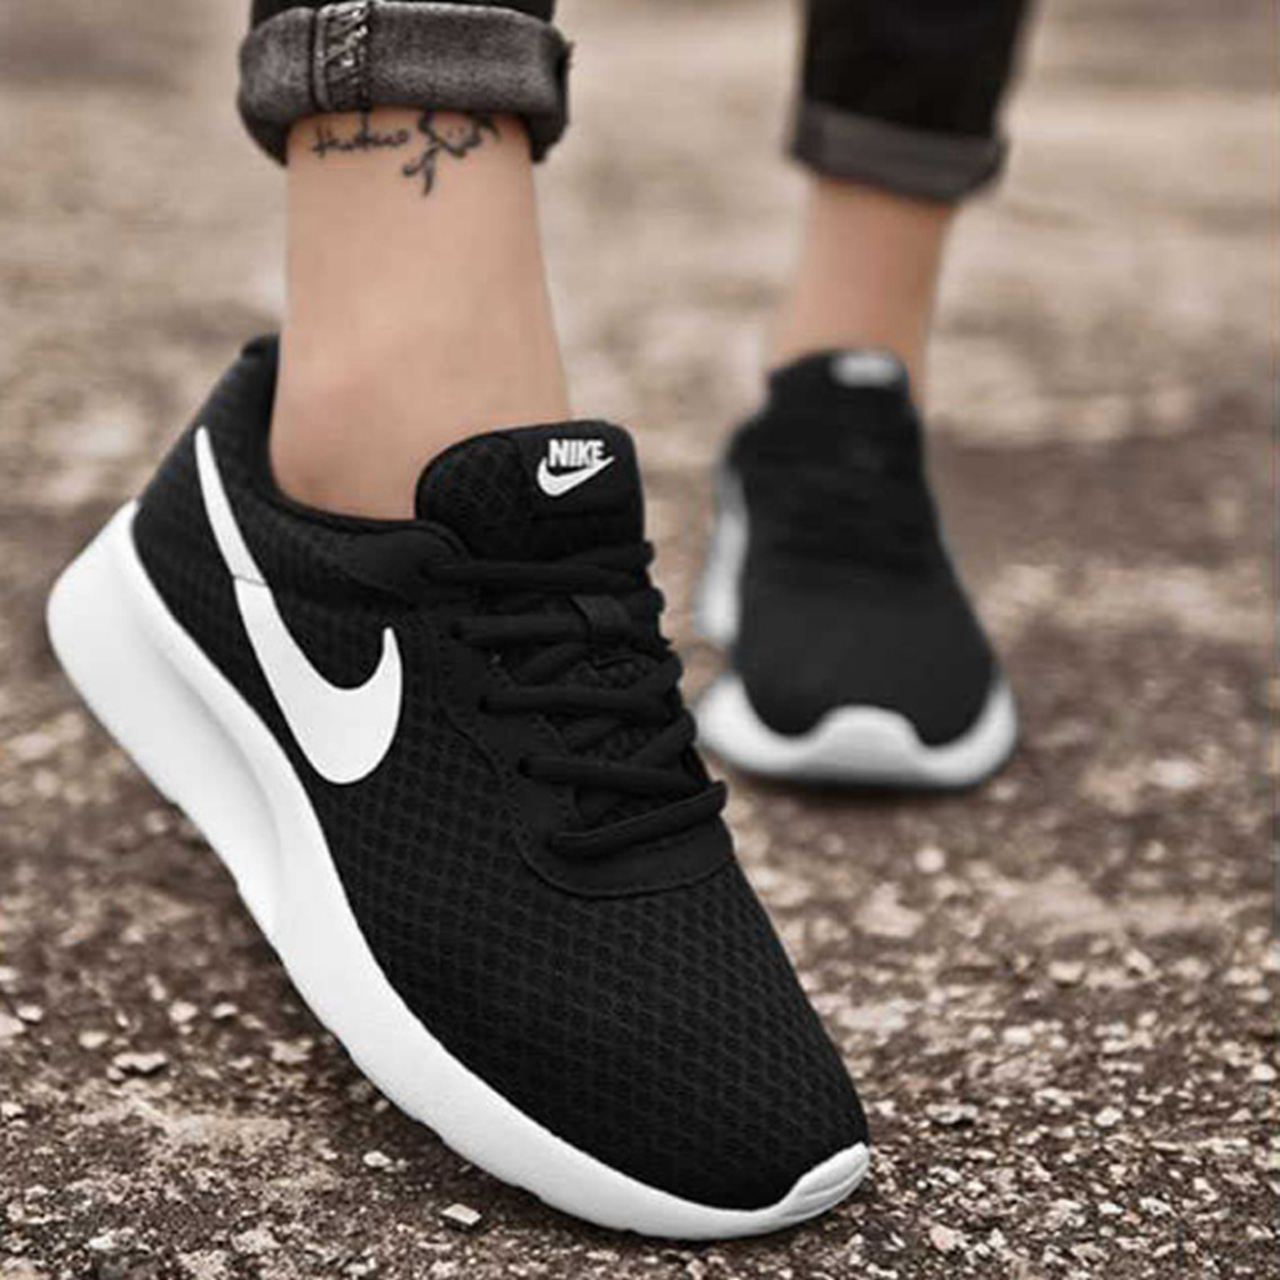 Nike official website flagship women's shoes men's shoes sports shoes women's running shoes new shoes winter authentic couple casual running shoes